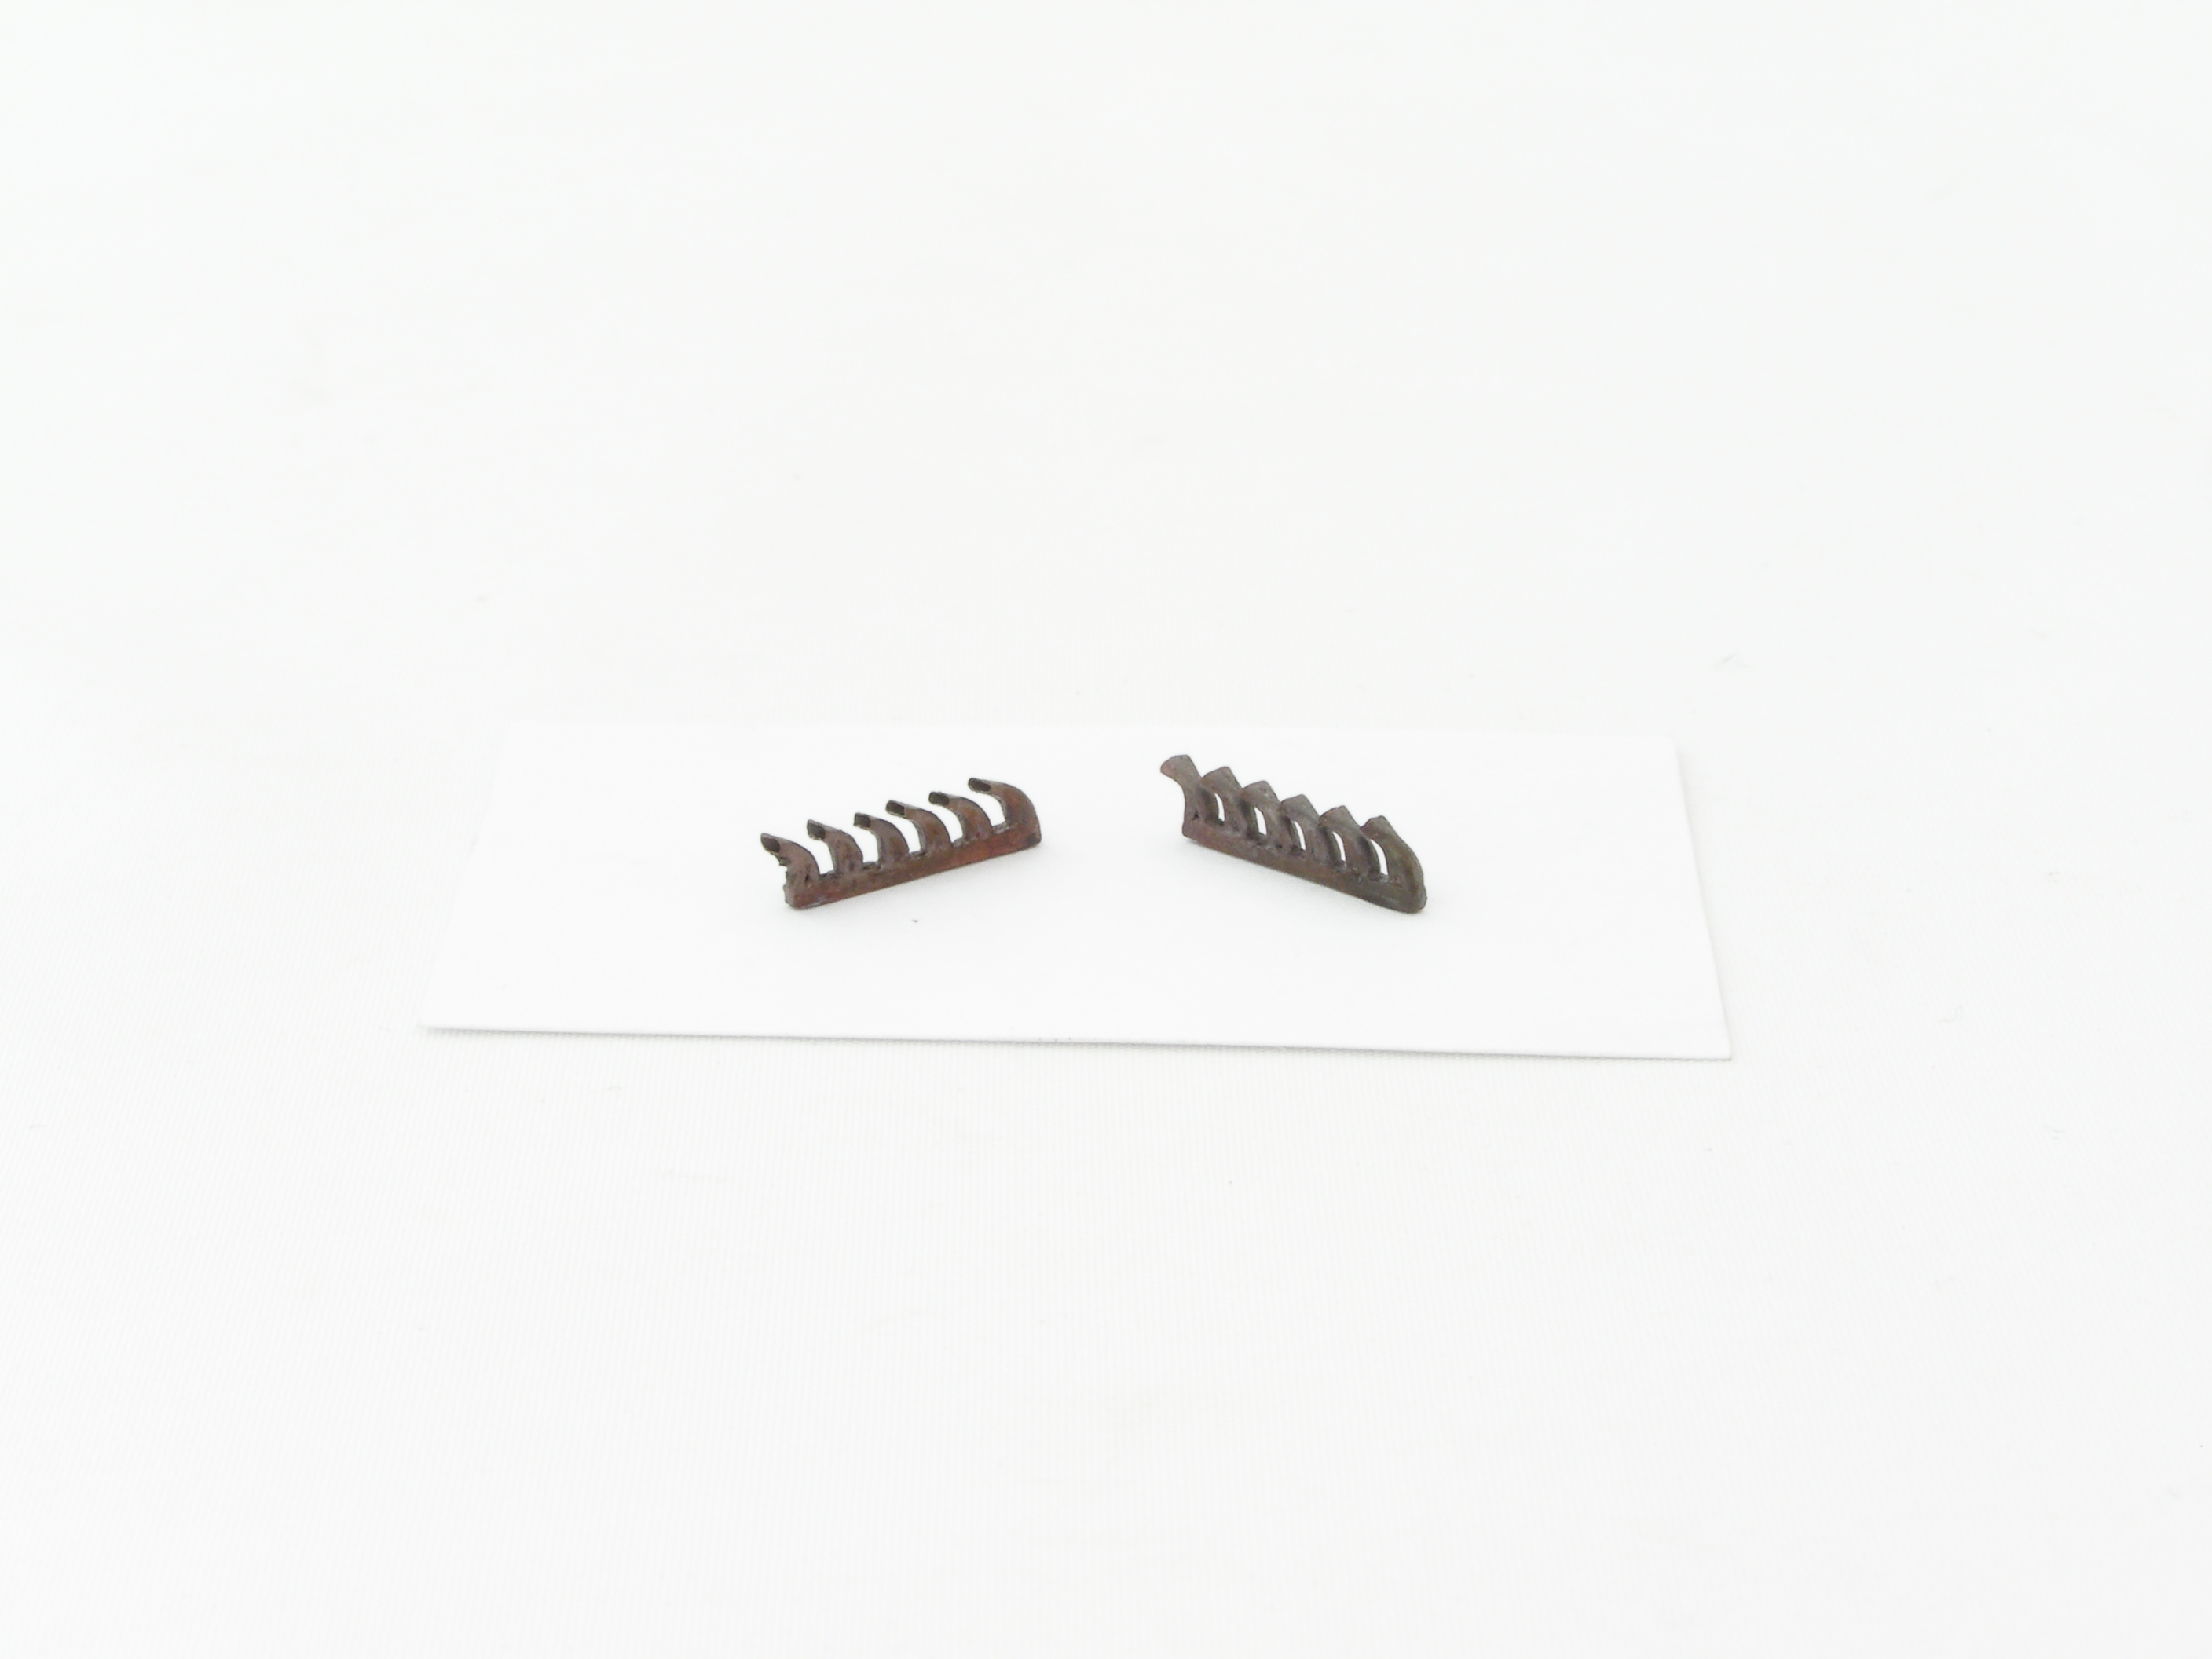 REXX metal exhaust pipes for 1/72 Curtiss P-40M/N Warhawk